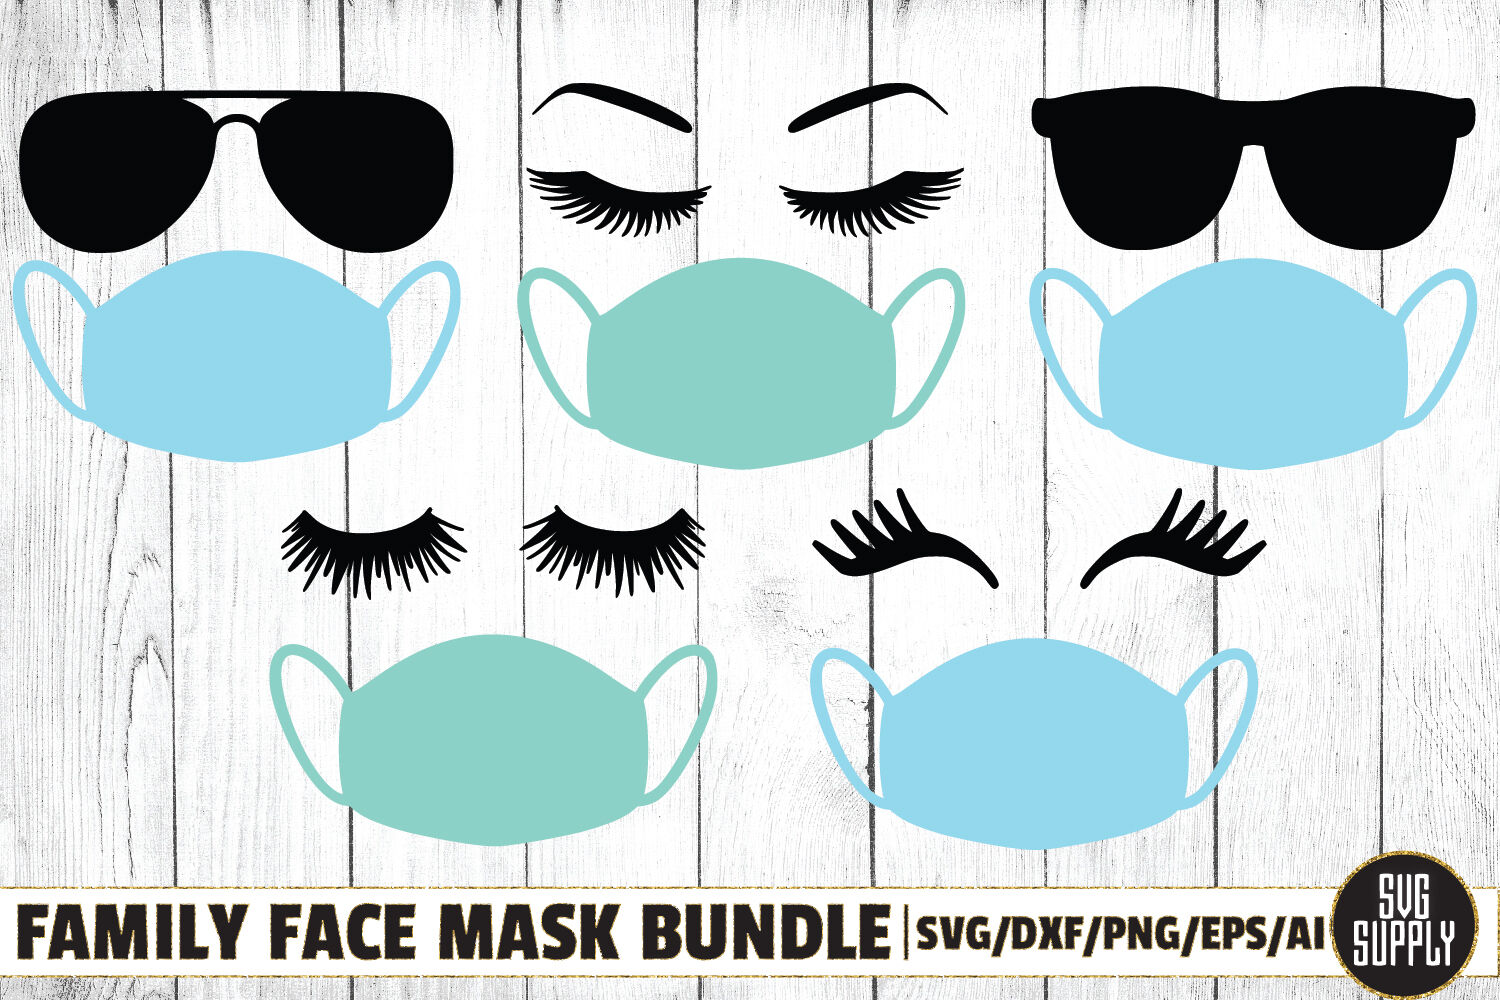 Family Face Mask Bundle Svg Cut File By Svgsupply Thehungryjpeg Com